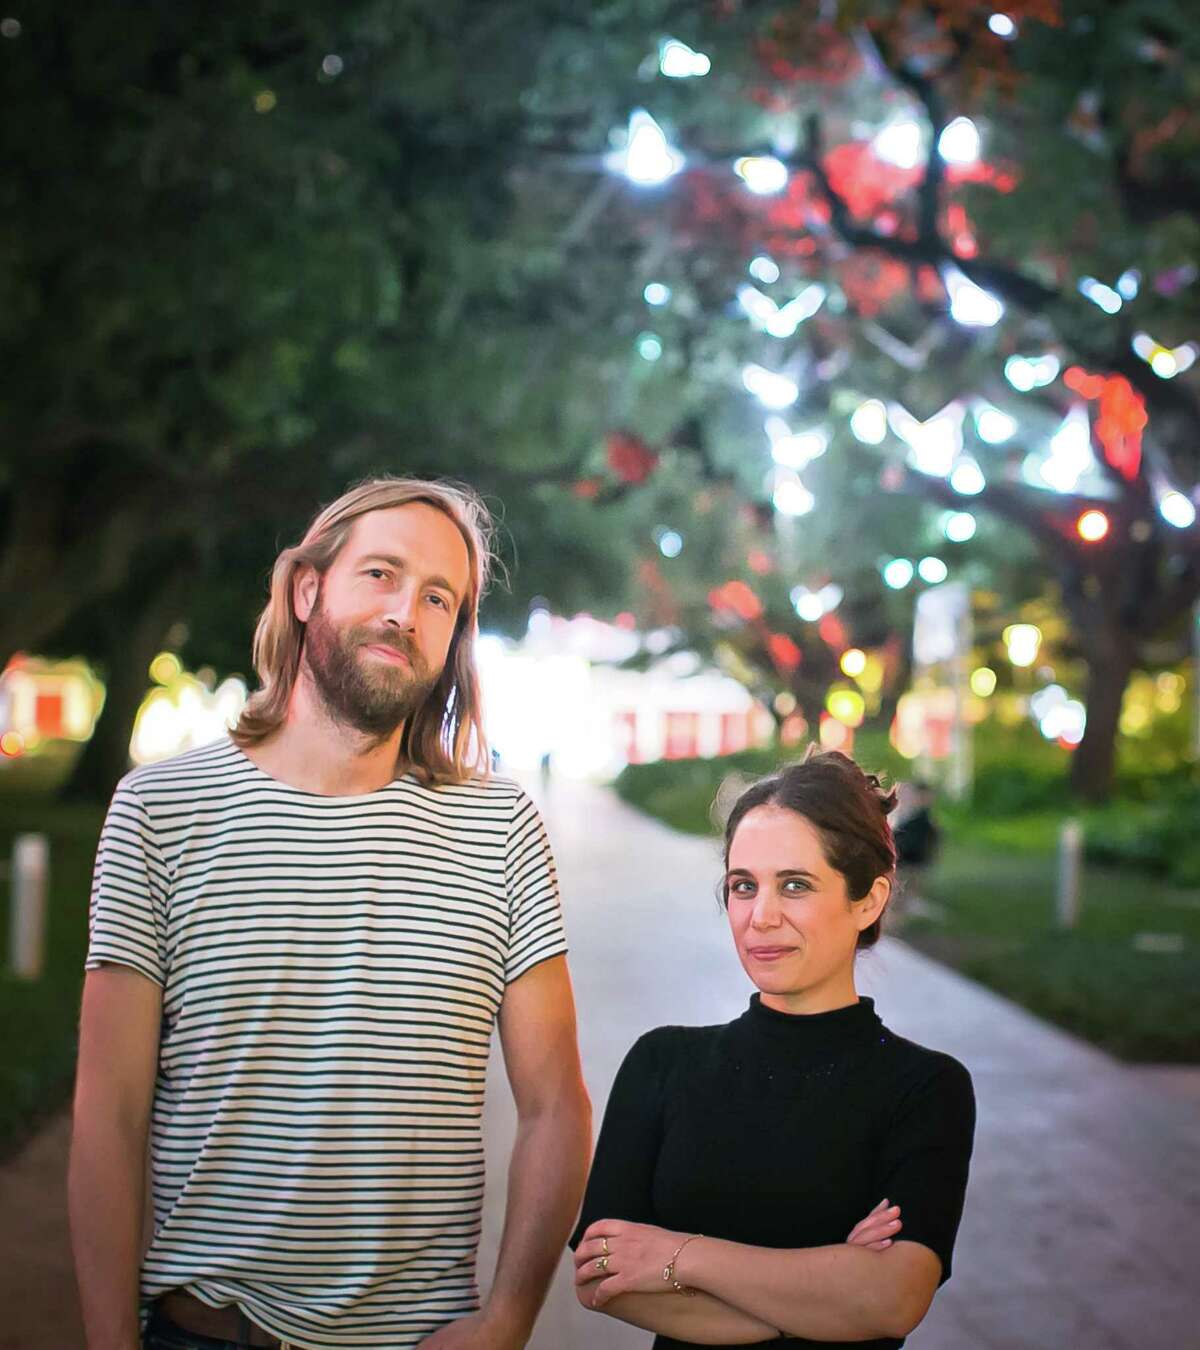 """Artists Arnaud Giroud of Pitaya, based in Lyon, France; and Houston artist Lina Dib collaborated to create """"Paloma,"""" this year's holiday sound and light installation along the oak allee at Discovery Green, sponsored by PNC Bank."""